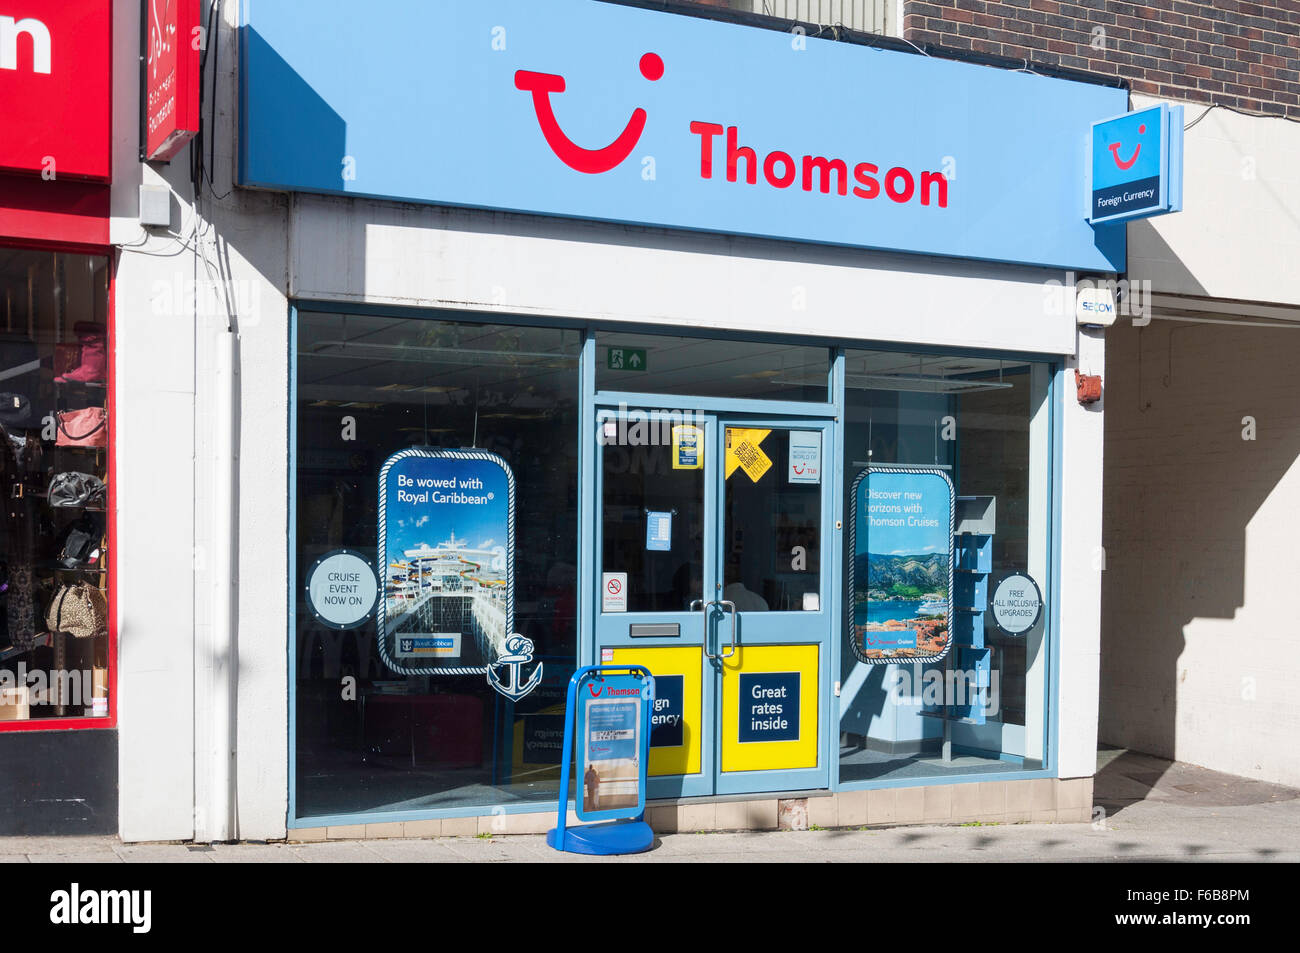 Thomson Holidays travel agents, Union Street, Aldershot, Hampshire, England, United Kingdom Photo Stock